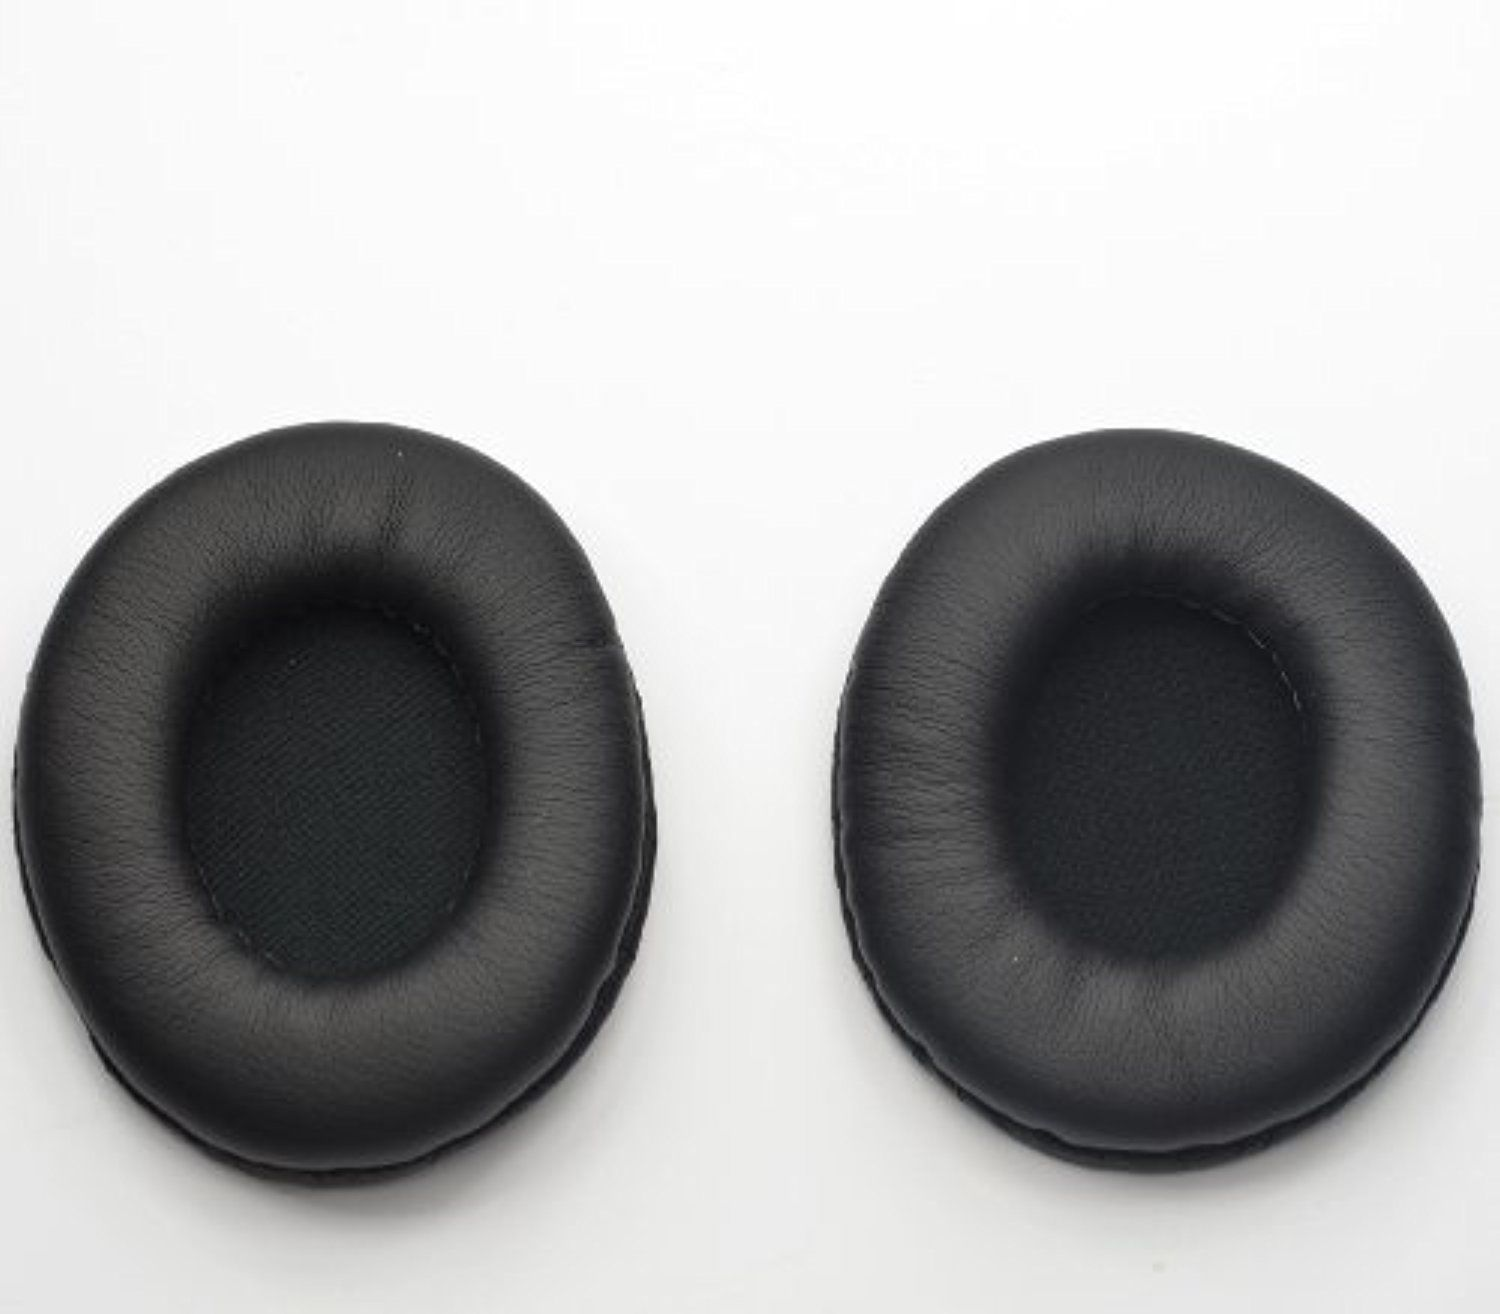 JHGJ Replacement Earpads Cushions for Sennheiser Hd202, Hd212 ...